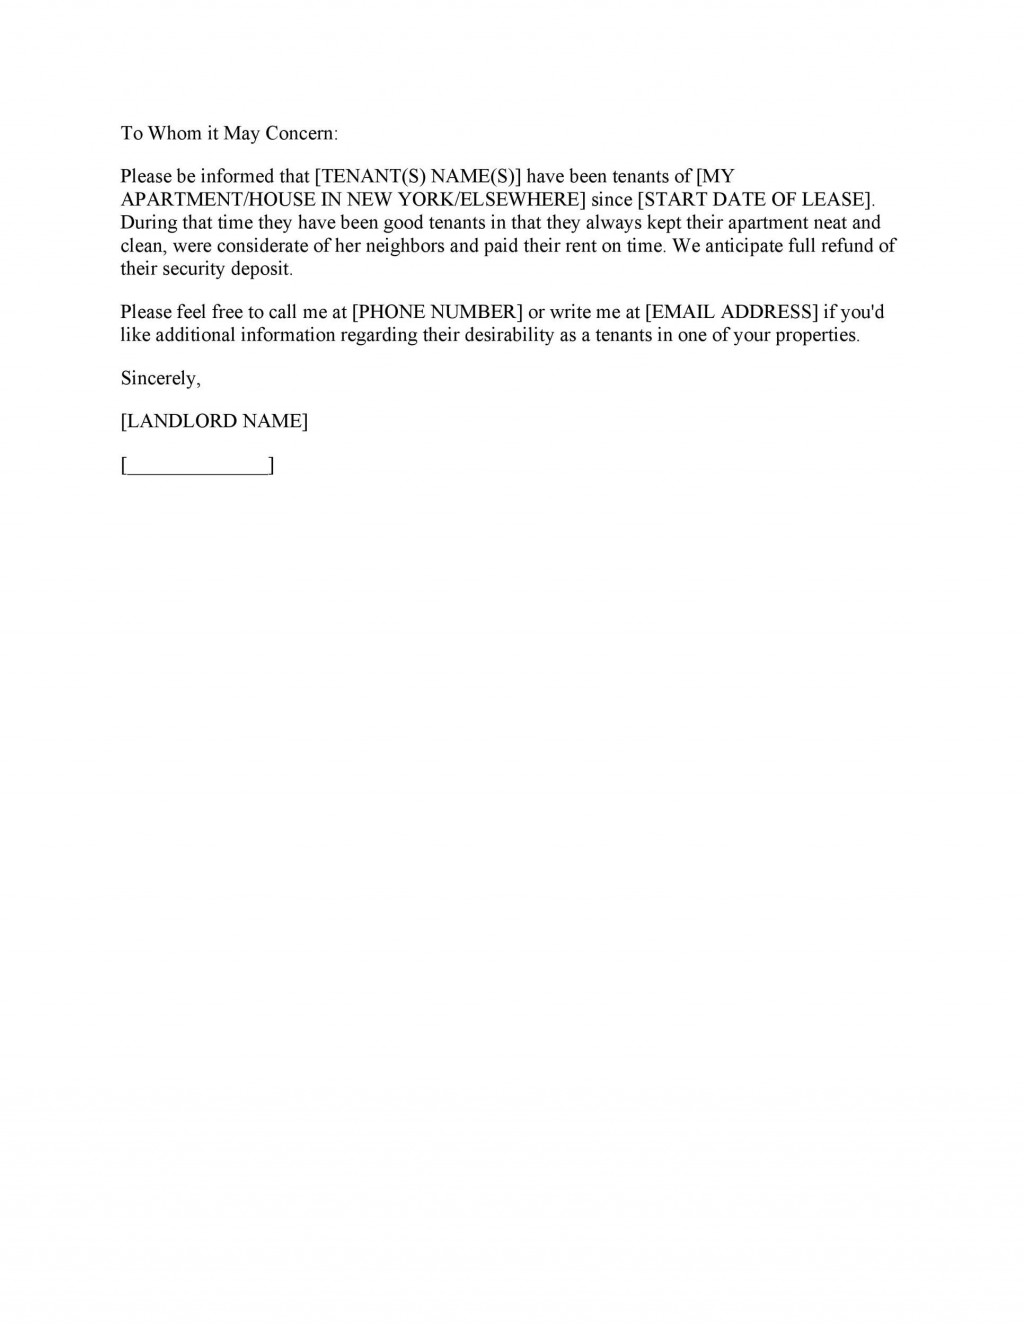 003 Unbelievable Free Reference Letter Template For Tenant Photo Large